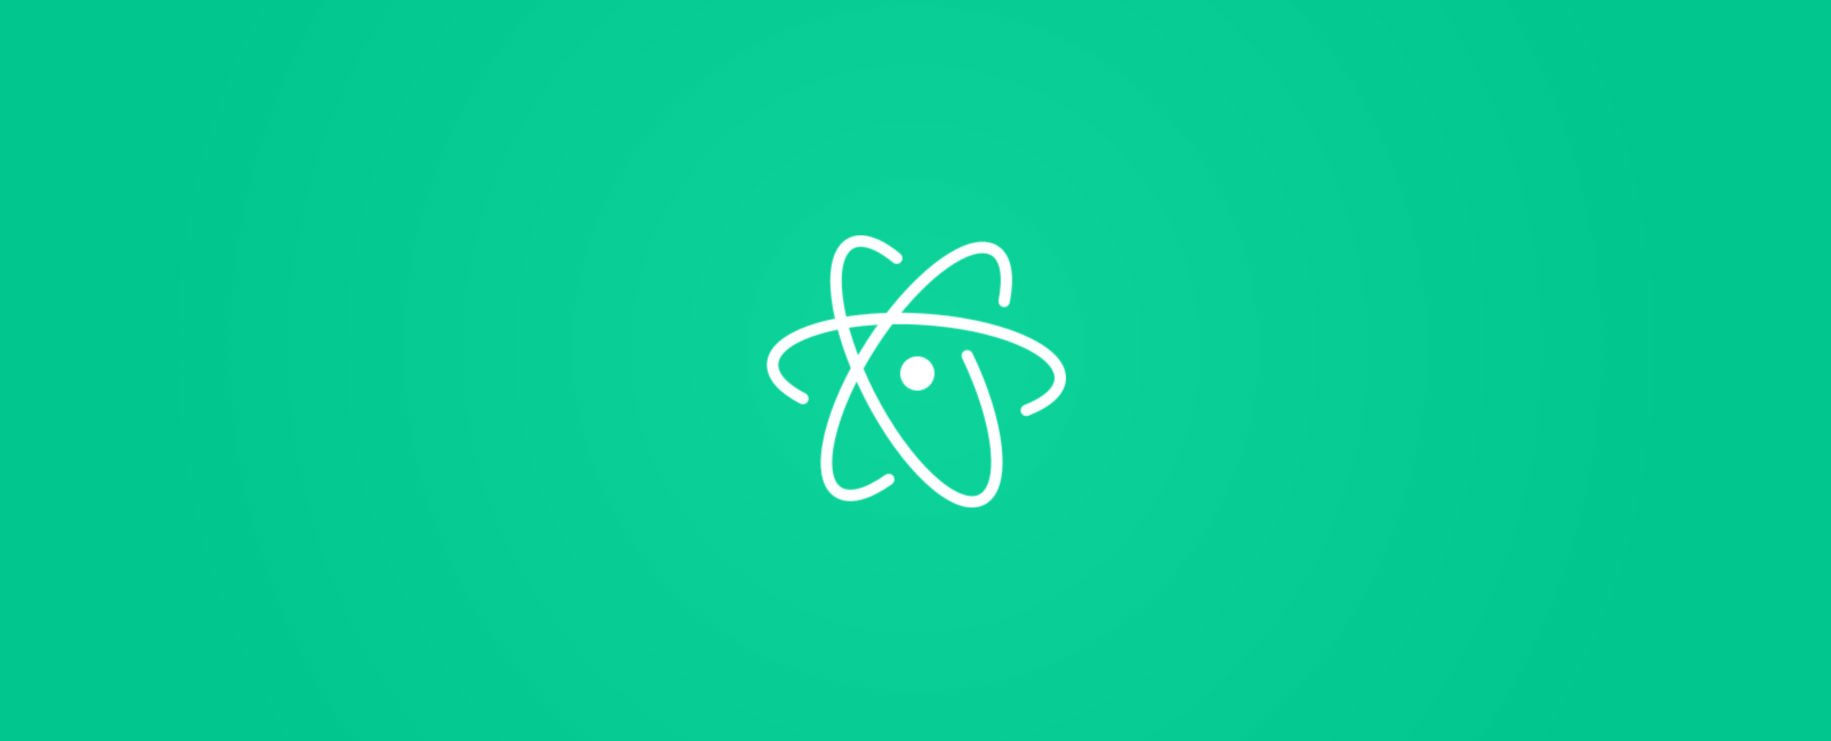 Using Atom for Web Development with Swift - The Swift Web